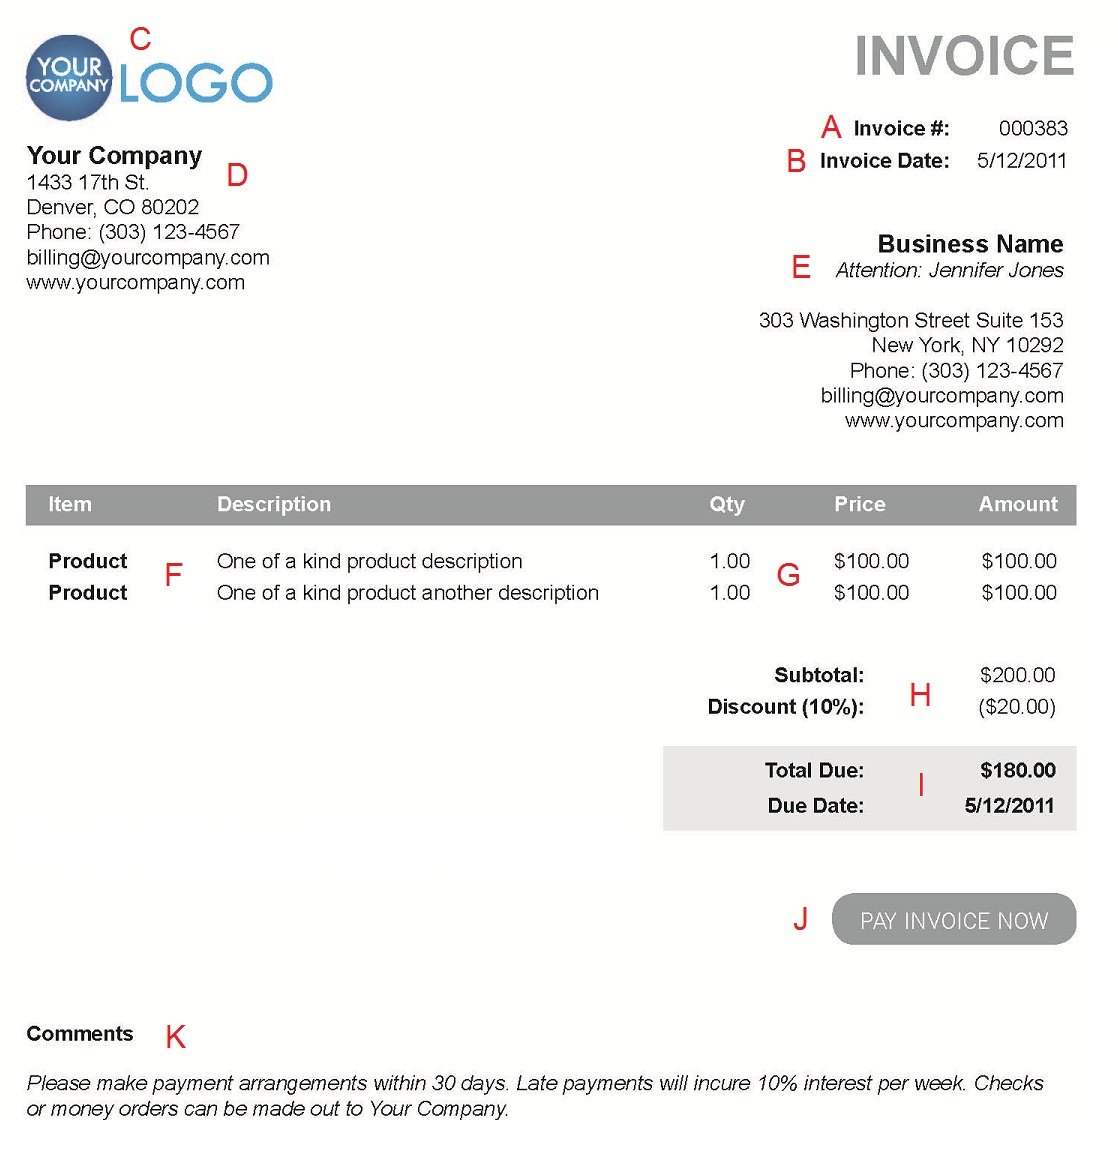 Ultrablogus  Mesmerizing The  Different Sections Of An Electronic Payment Invoice With Excellent A  With Amusing Template Invoice For Services Also Layout Of An Invoice In Addition Rails Invoice And Ltd Company Invoice Template As Well As Sample Company Invoice Additionally Nz Invoice Template From Paysimplecom With Ultrablogus  Excellent The  Different Sections Of An Electronic Payment Invoice With Amusing A  And Mesmerizing Template Invoice For Services Also Layout Of An Invoice In Addition Rails Invoice From Paysimplecom